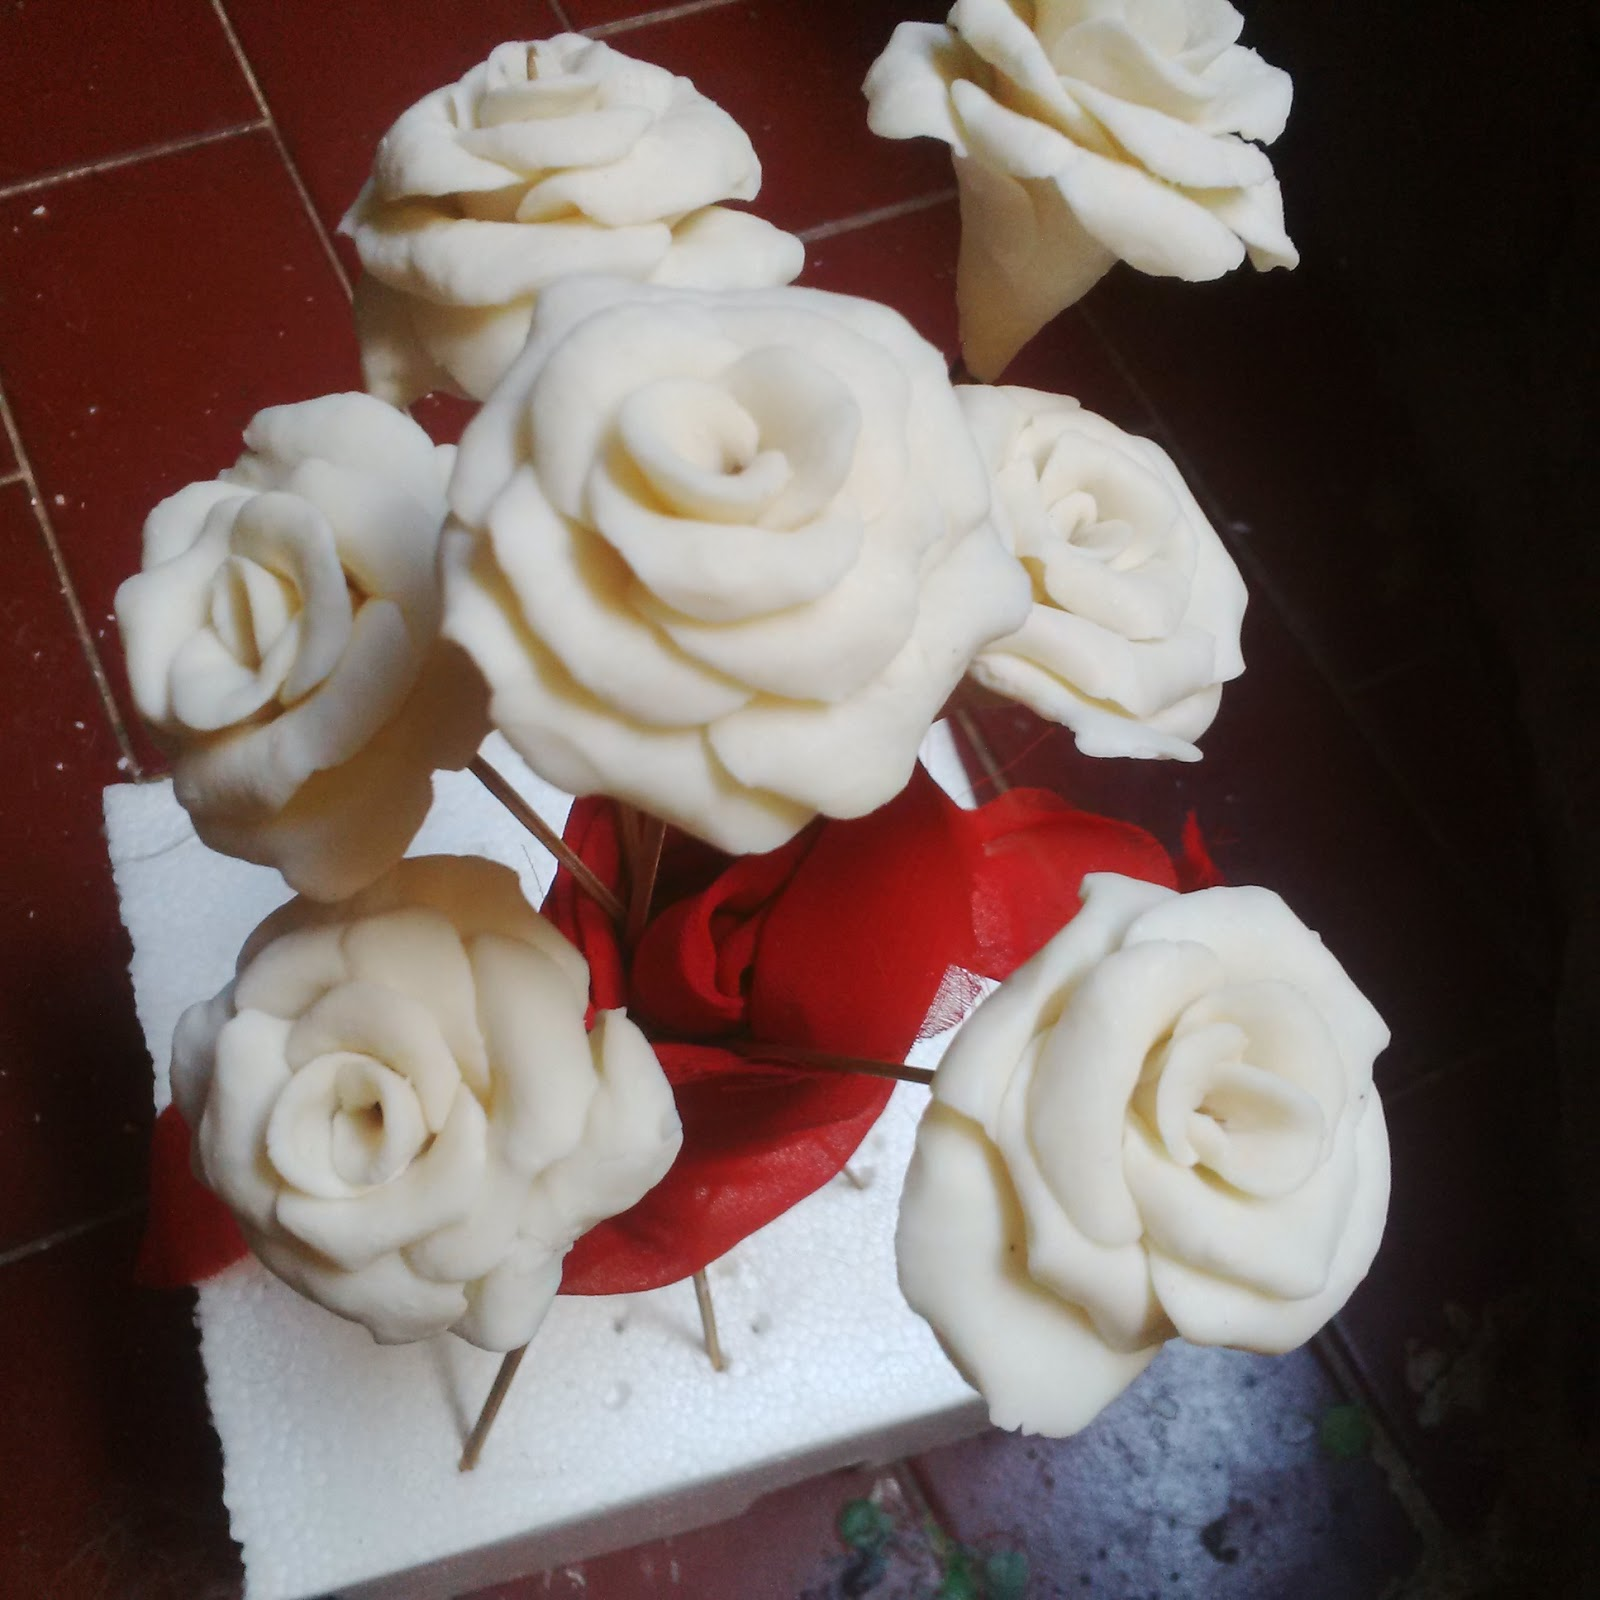 My Life White Rose From Soap